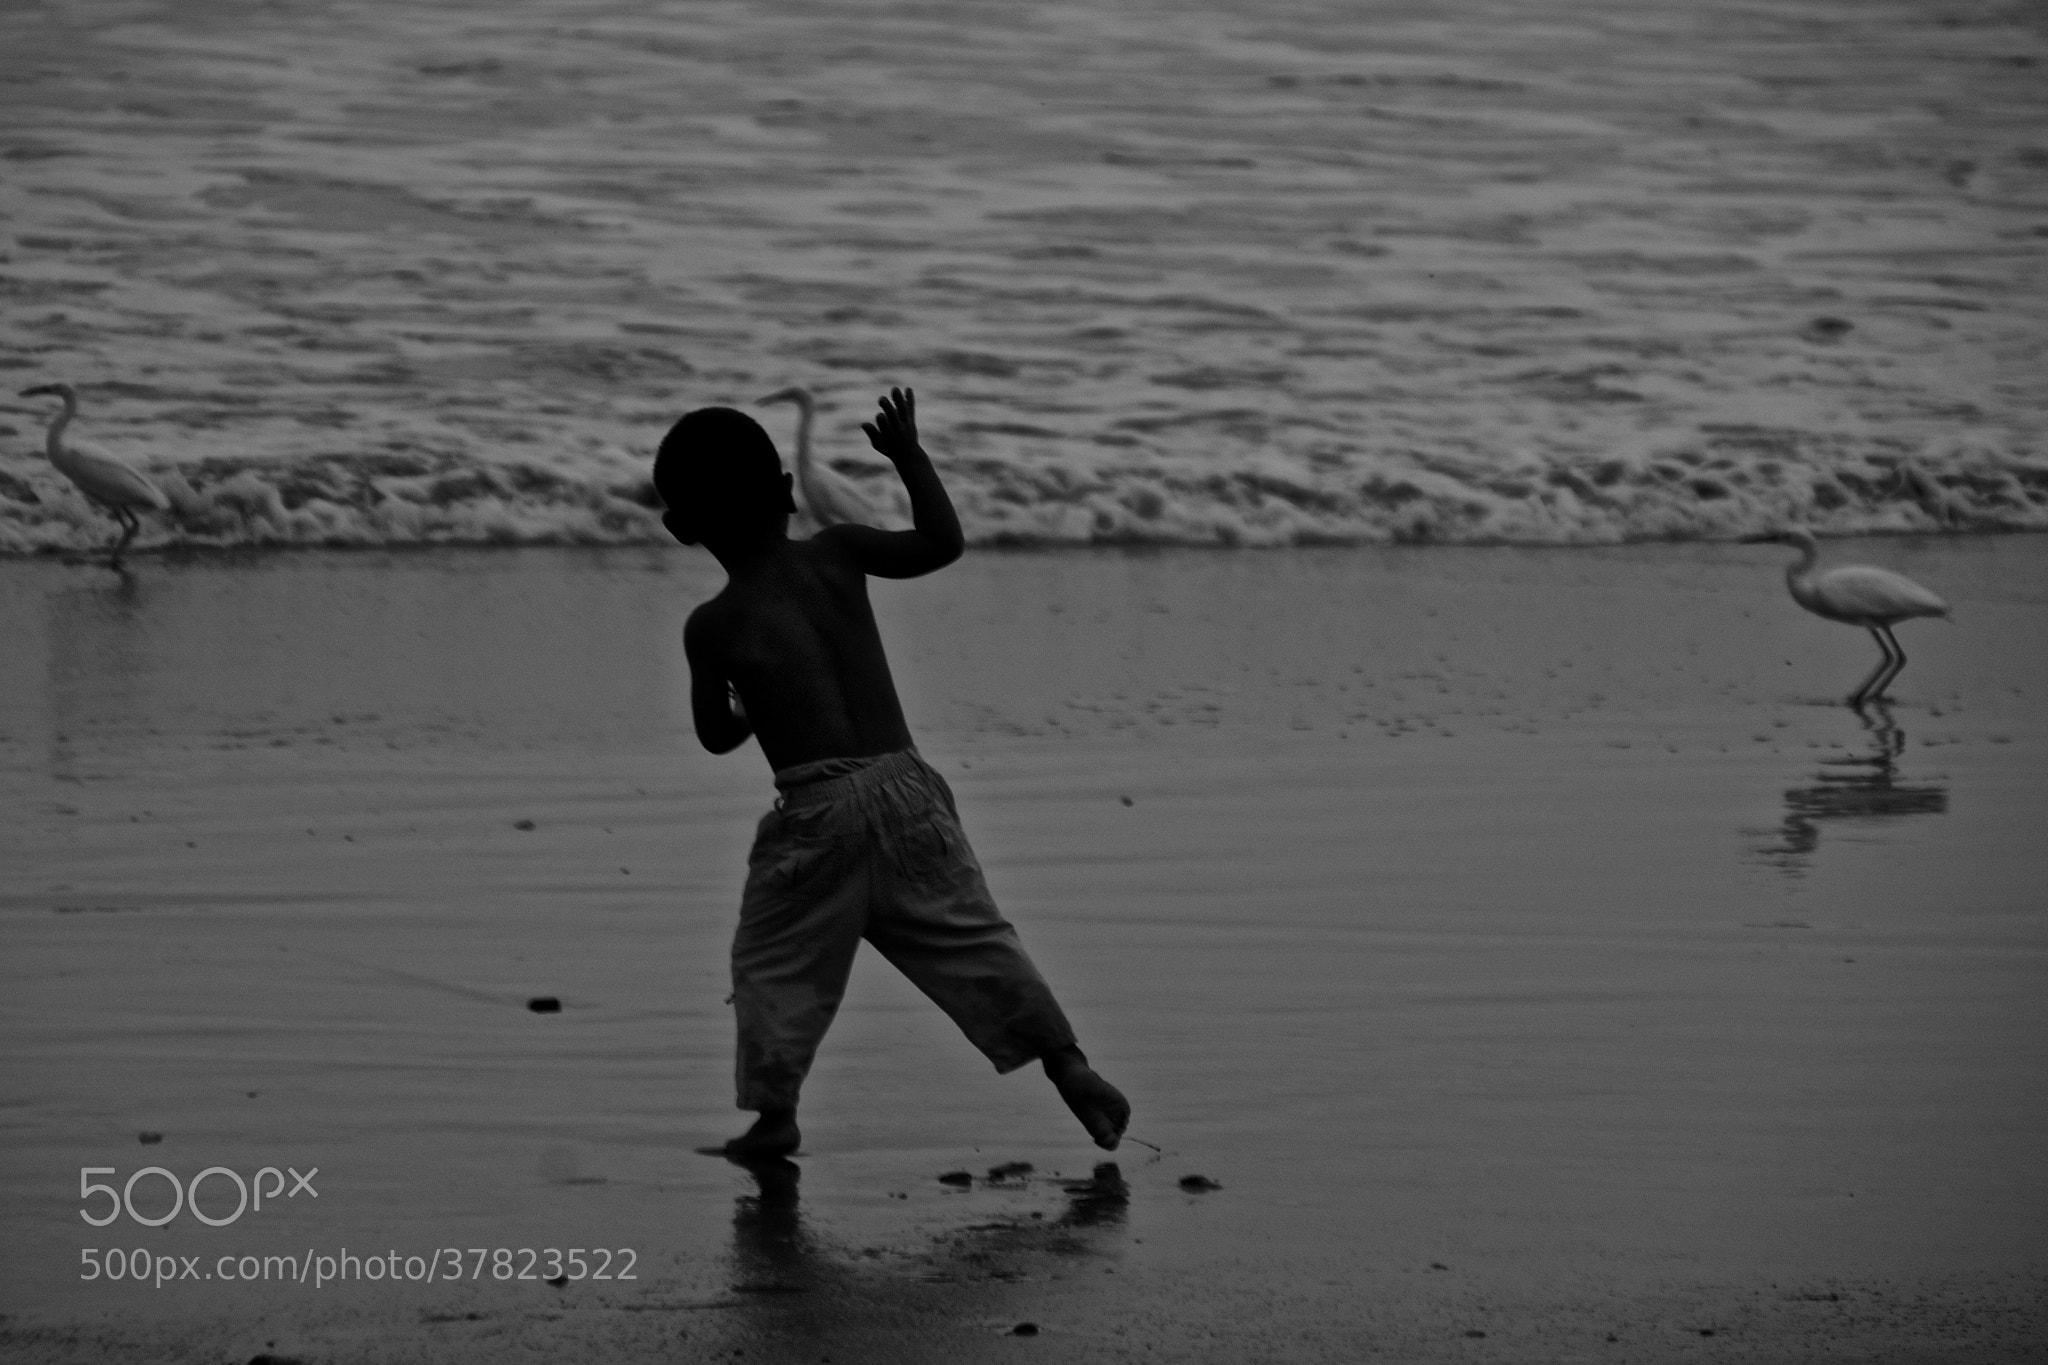 Photograph niño en la playa by Xavier Ortega on 500px